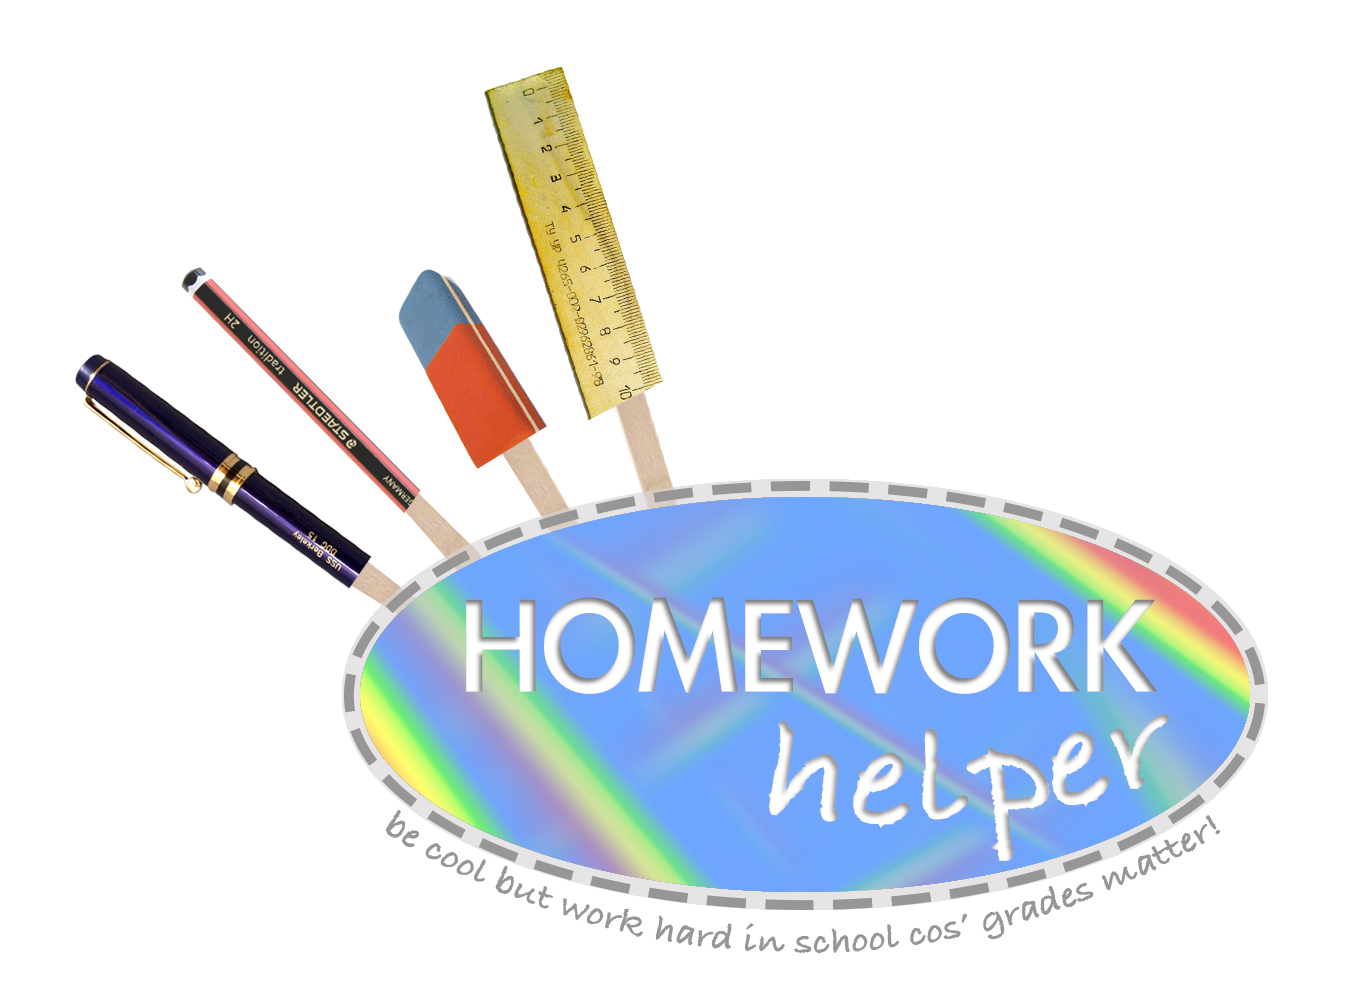 homeworkhelper Featured homework helper for primary school students b j pinchbeck's homework helper provides free, online resources for elementary, middle and high school students references are categorized in topical areas that include: art, music, english, foreign language, science, social studies, and other core curricular content.